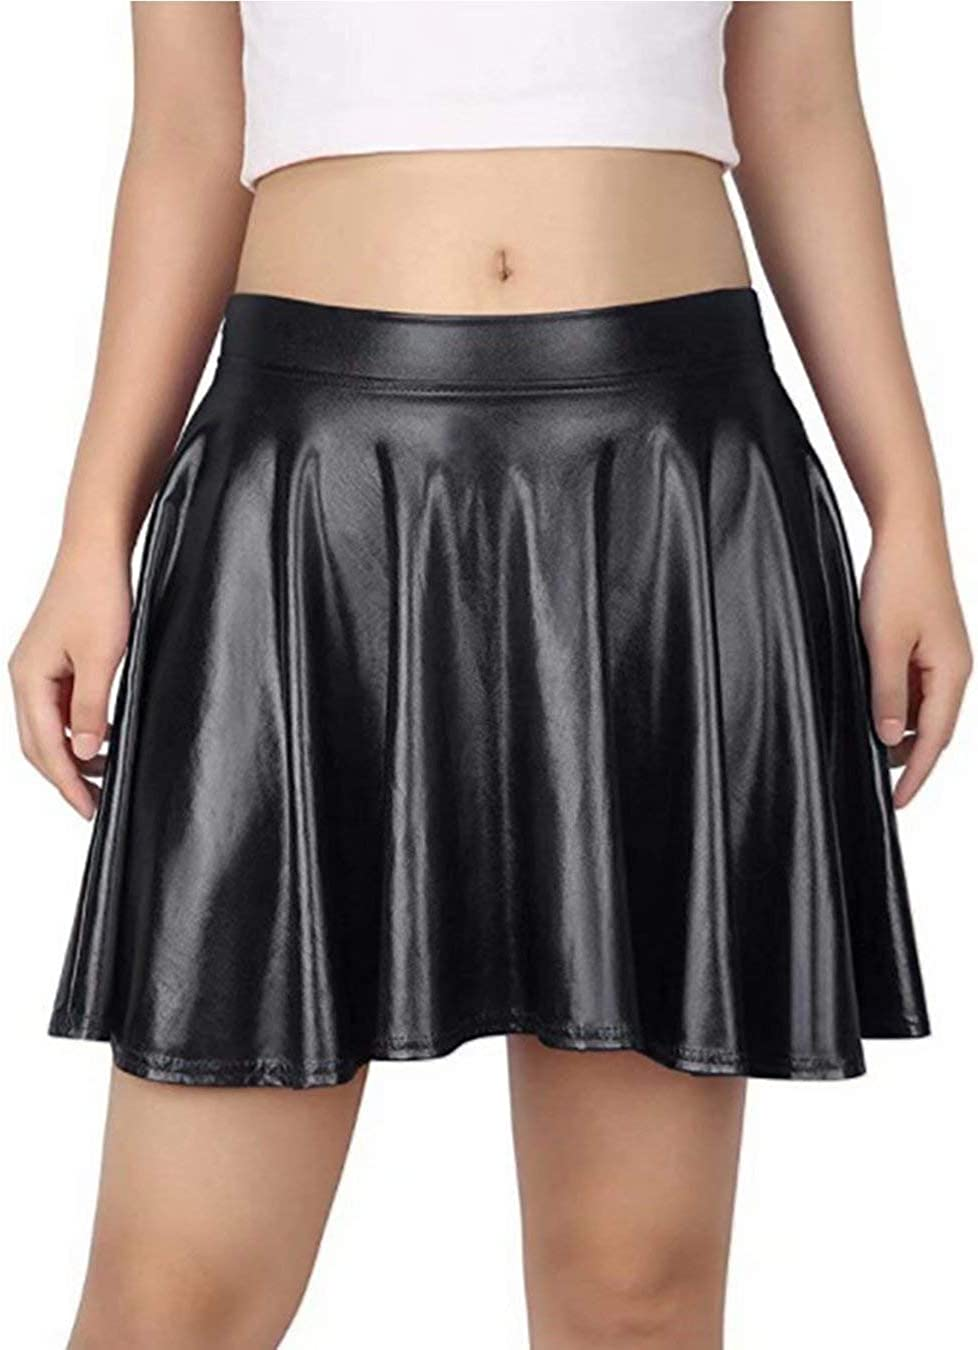 Twotwowin Womens Fashion Shiny A-Line Skirt Stretchy Flared Pleated Mini Metallic Skater Skirt